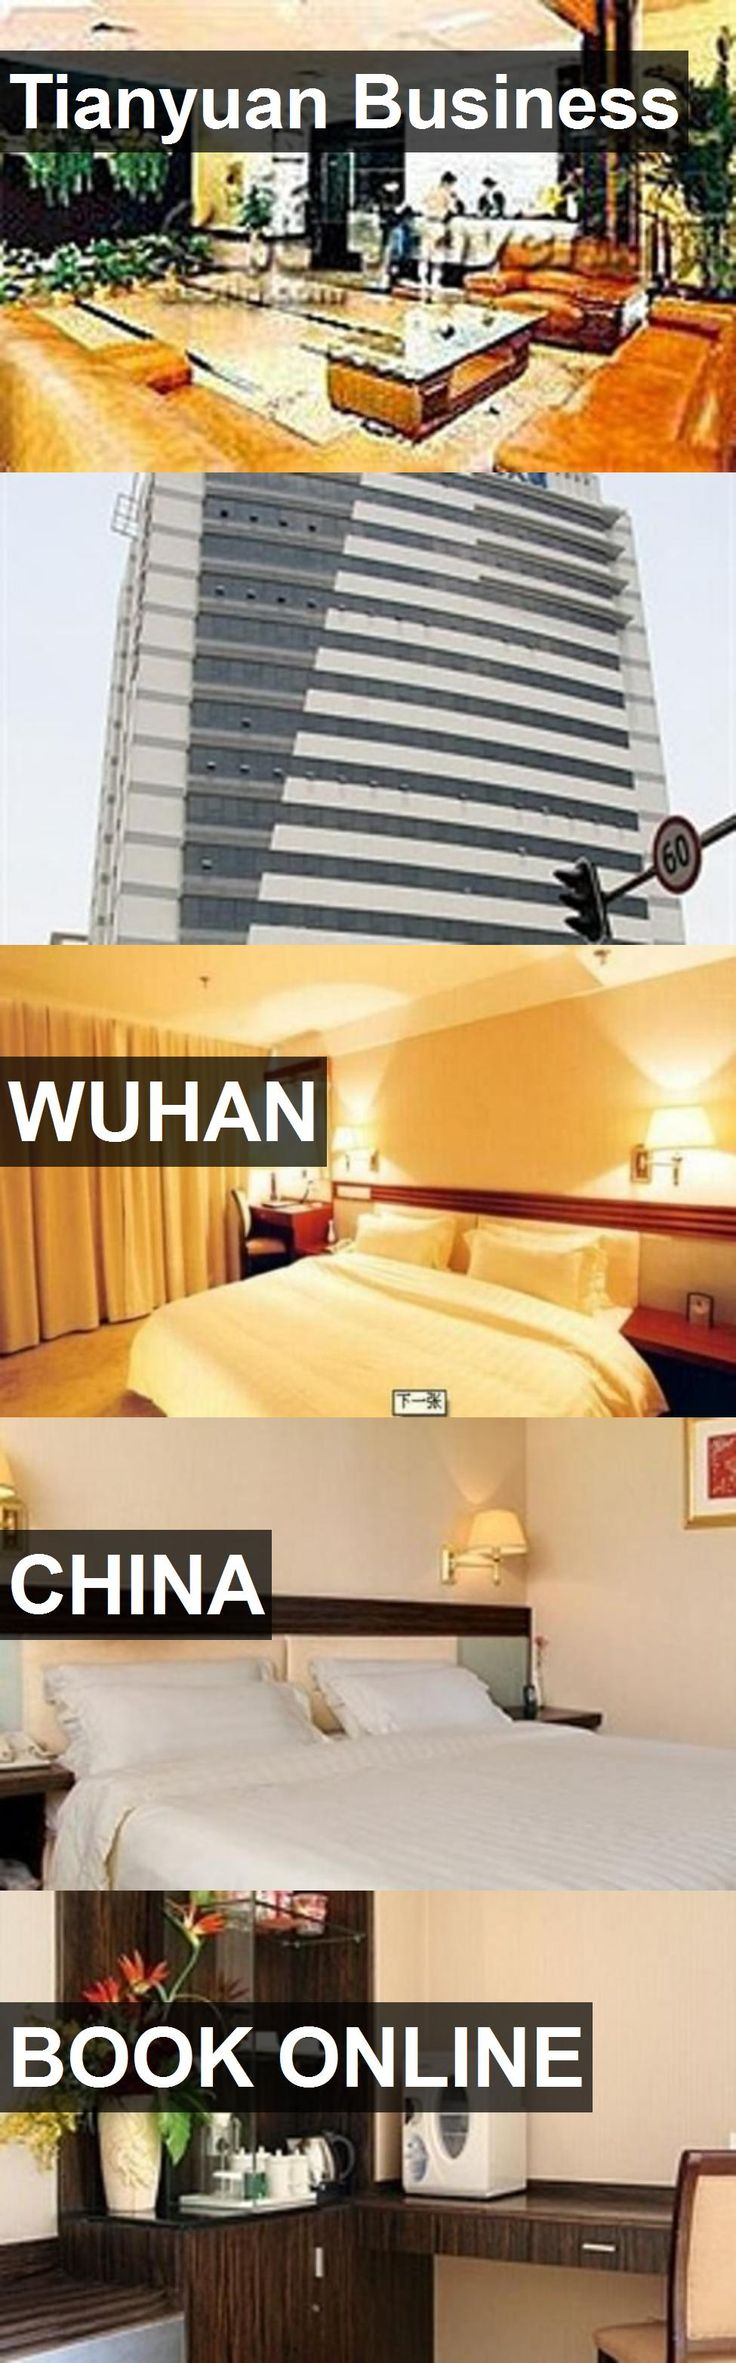 Hotel Tianyuan Business in Wuhan, China. For more information, photos, reviews and best prices please follow the link. #China #Wuhan #TianyuanBusiness #hotel #travel #vacation